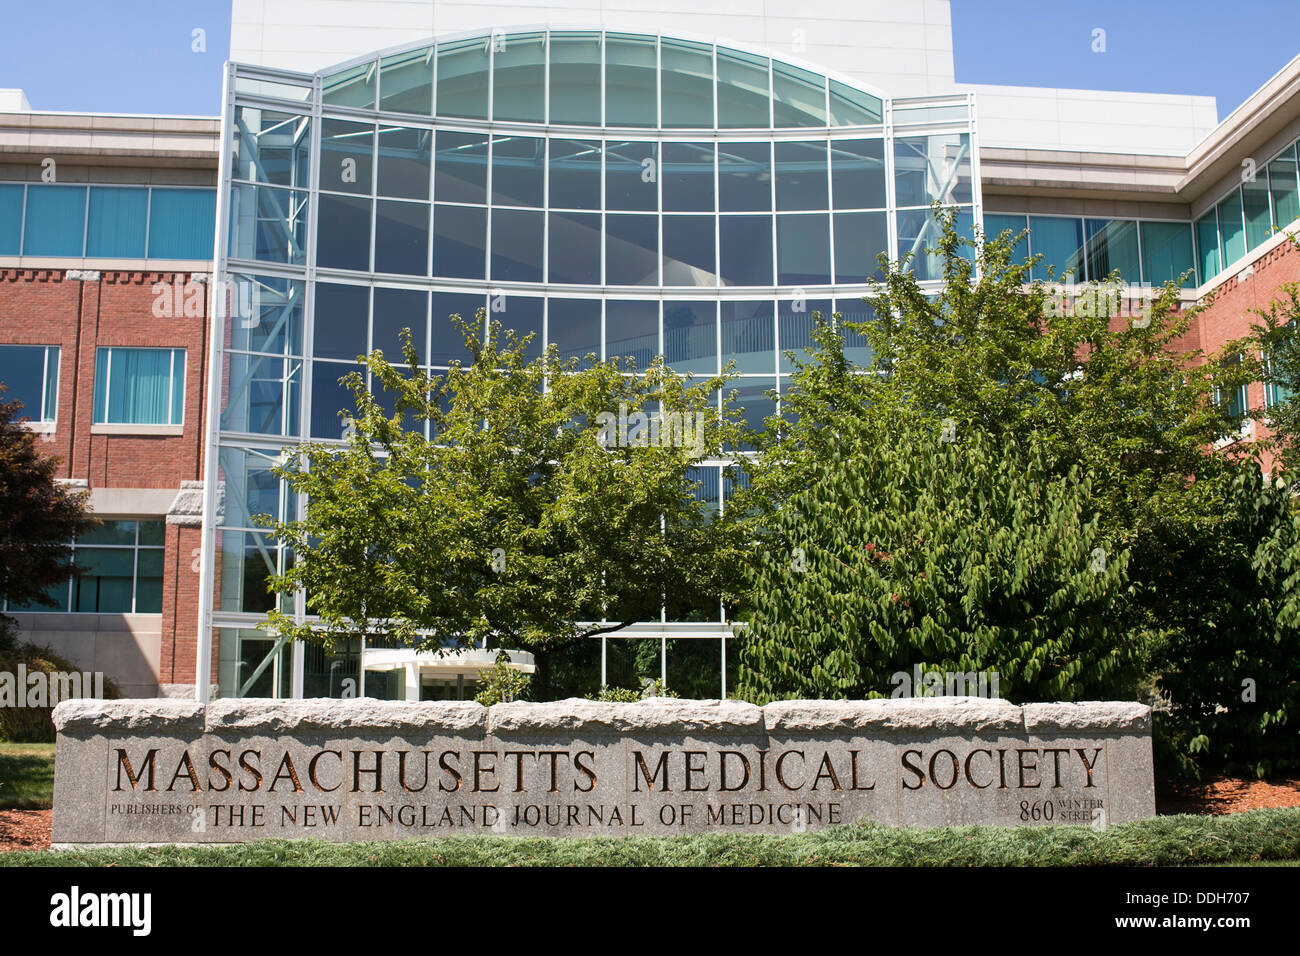 The headquarters of the Massachusetts Medical Society, the publisher of the New England Journal Of Medicine.  - Stock Image